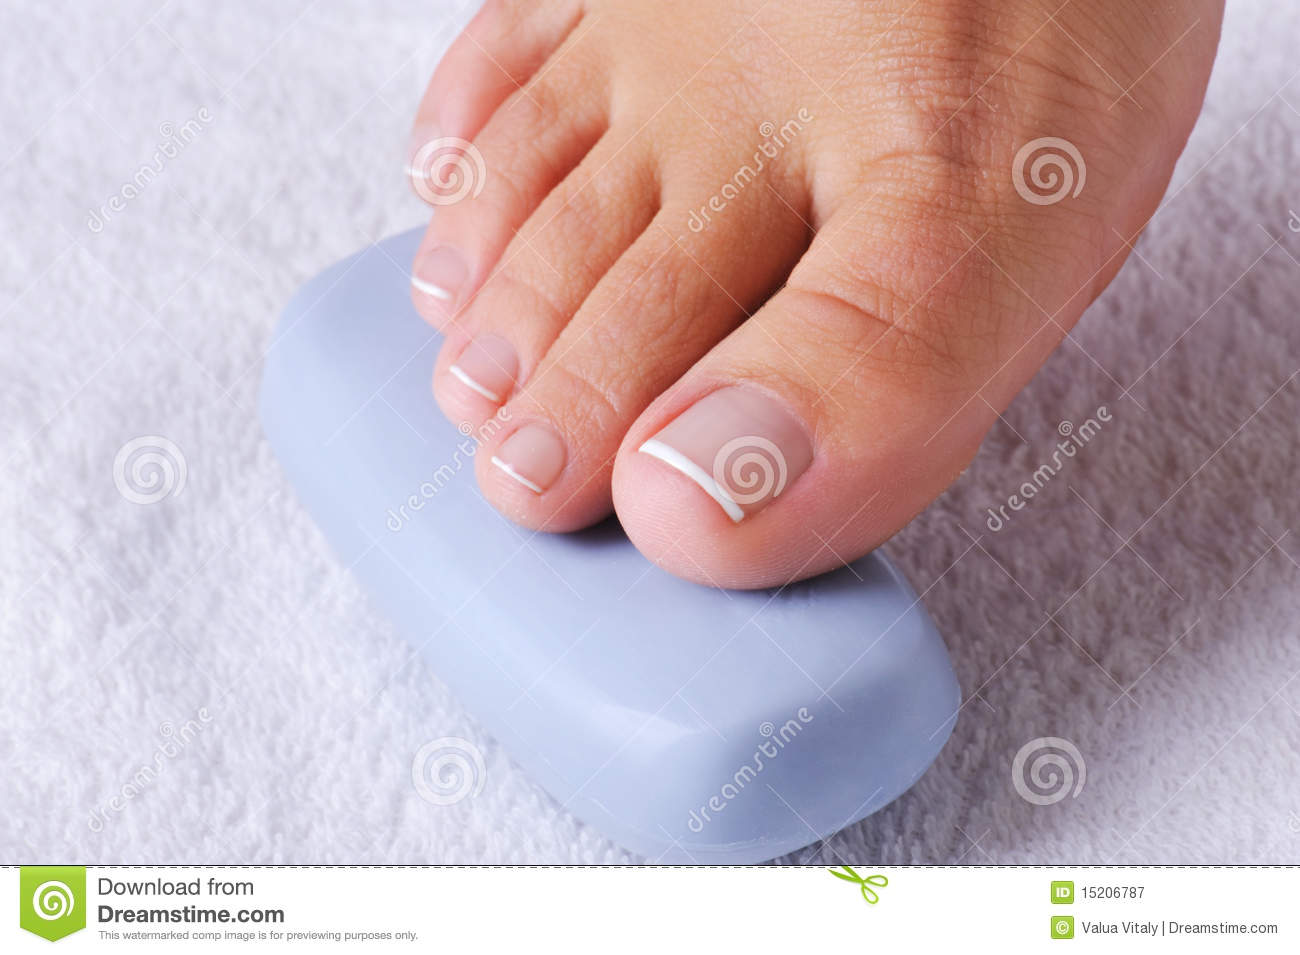 hygiene single men Looking for personal hygiene tips for men visit howstuffworks to find 5 personal hygiene tips for men.